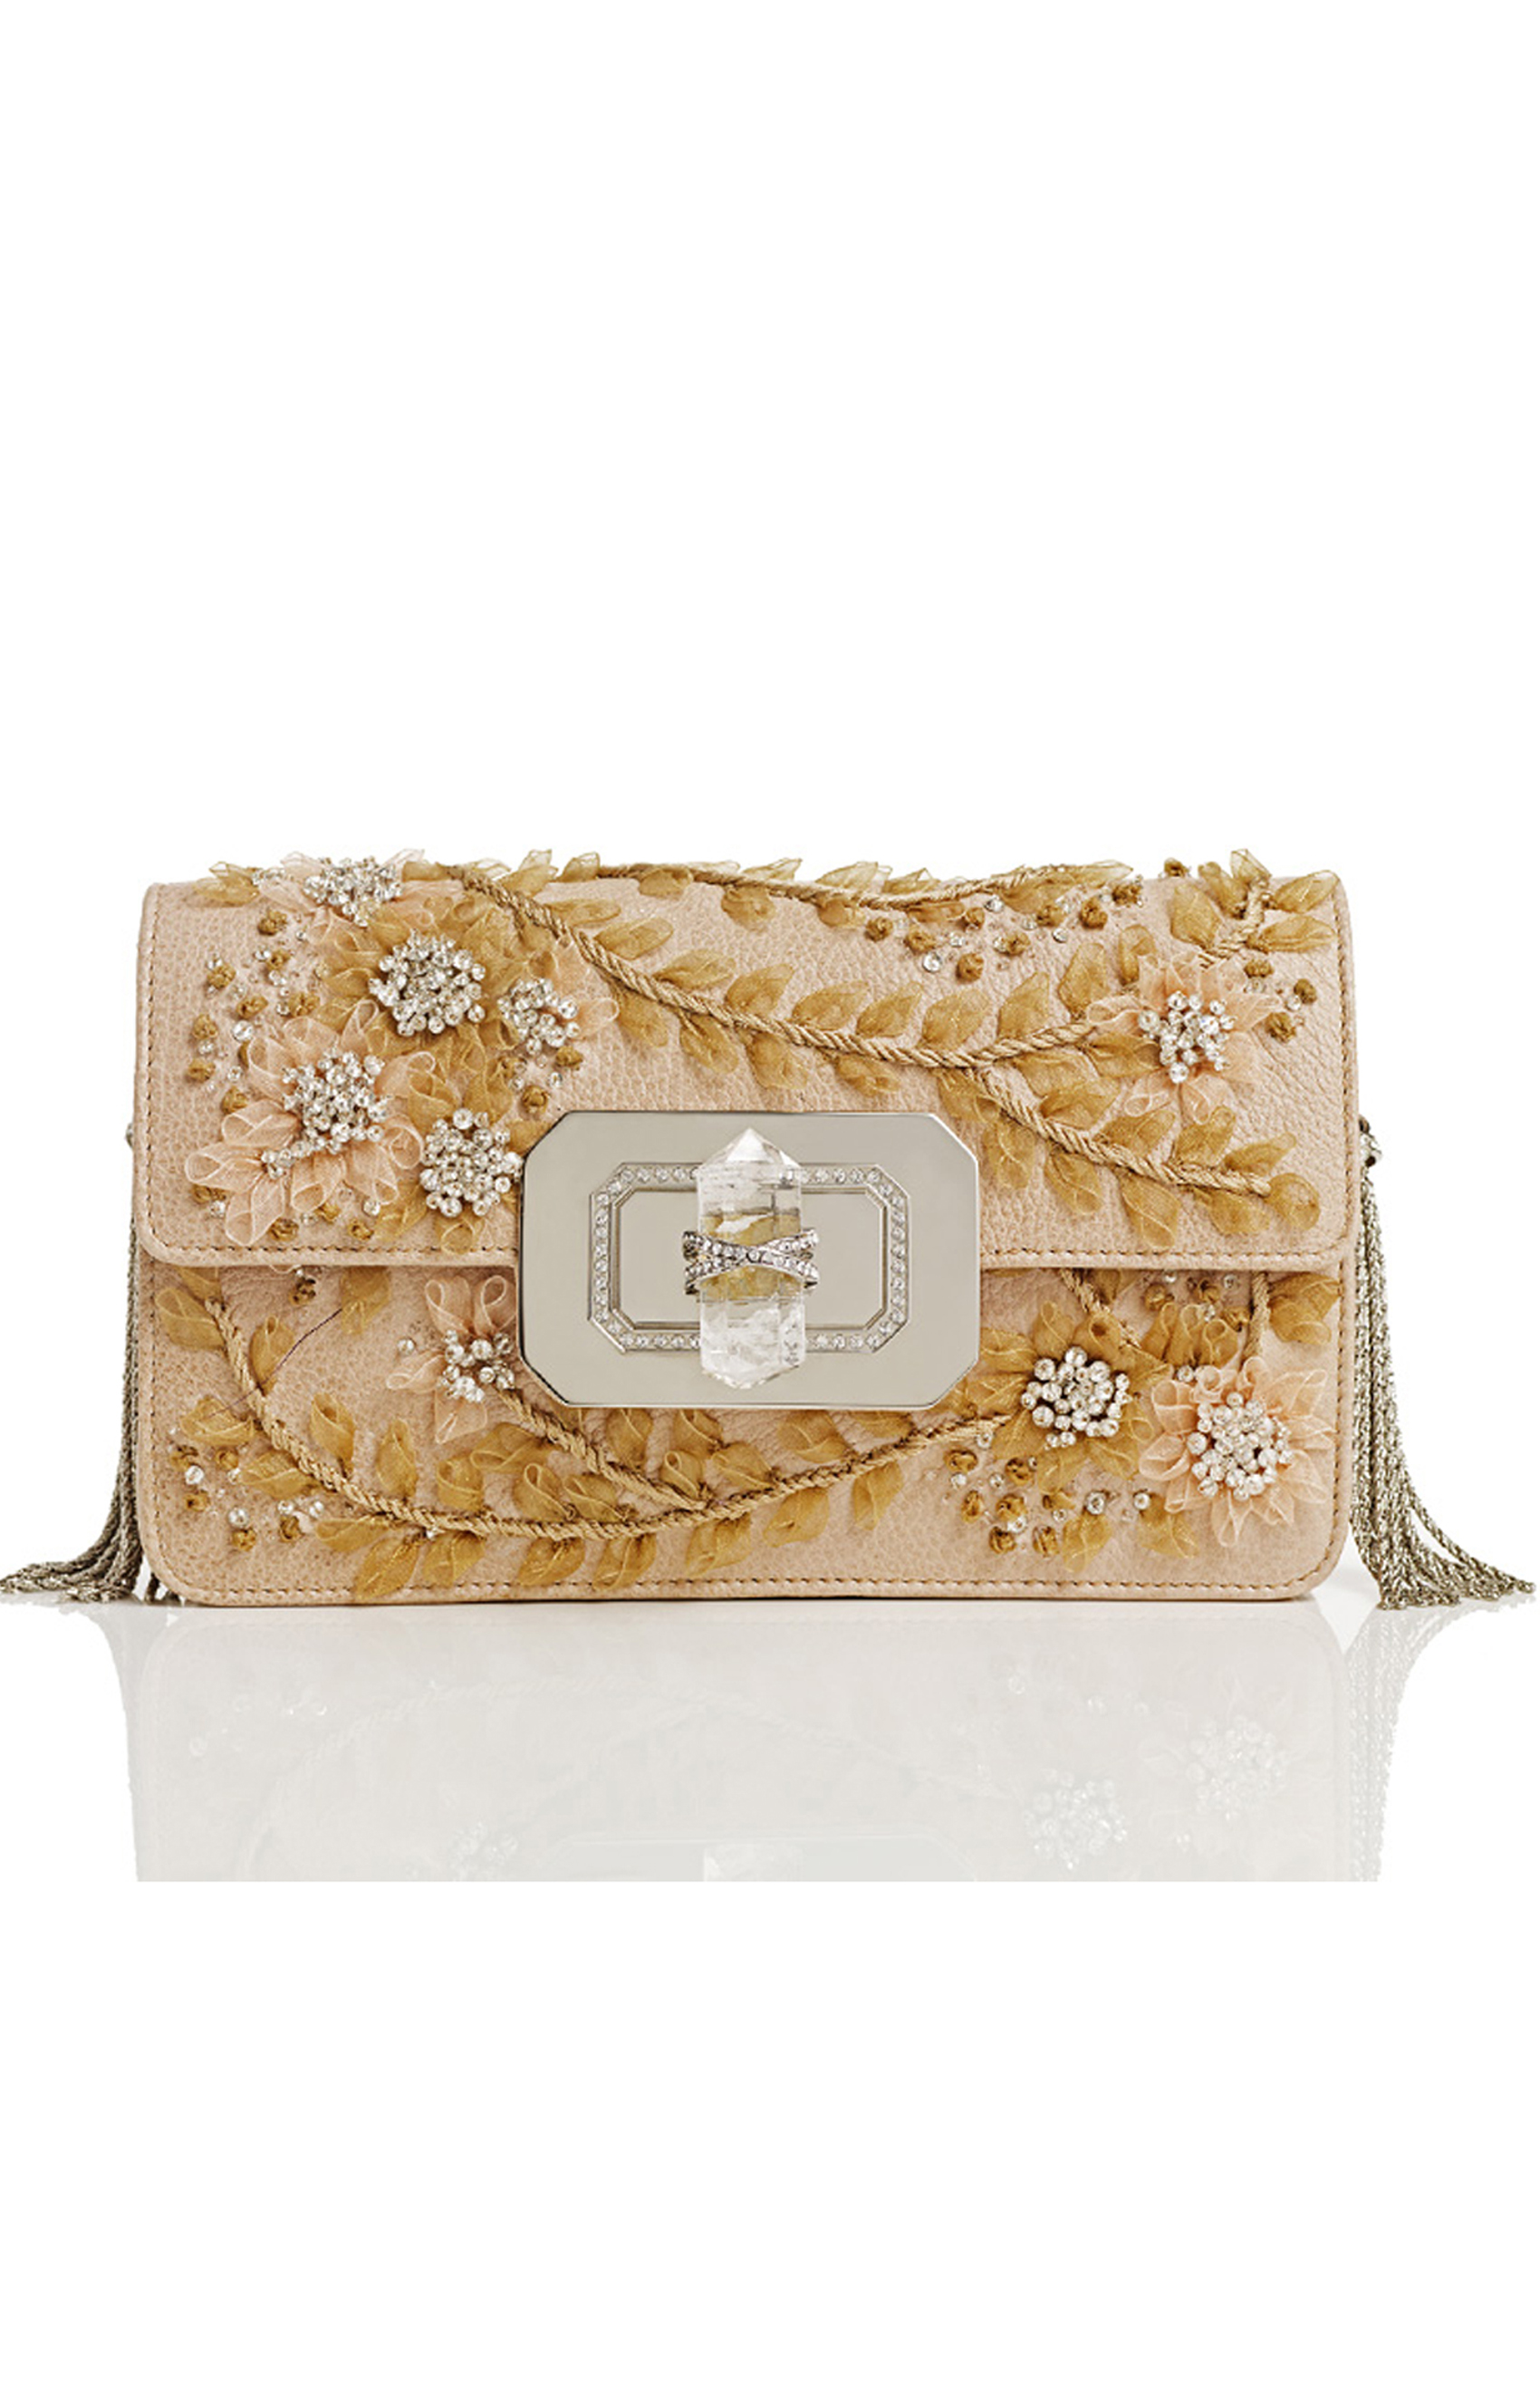 Marchesa <br>Handbag 14